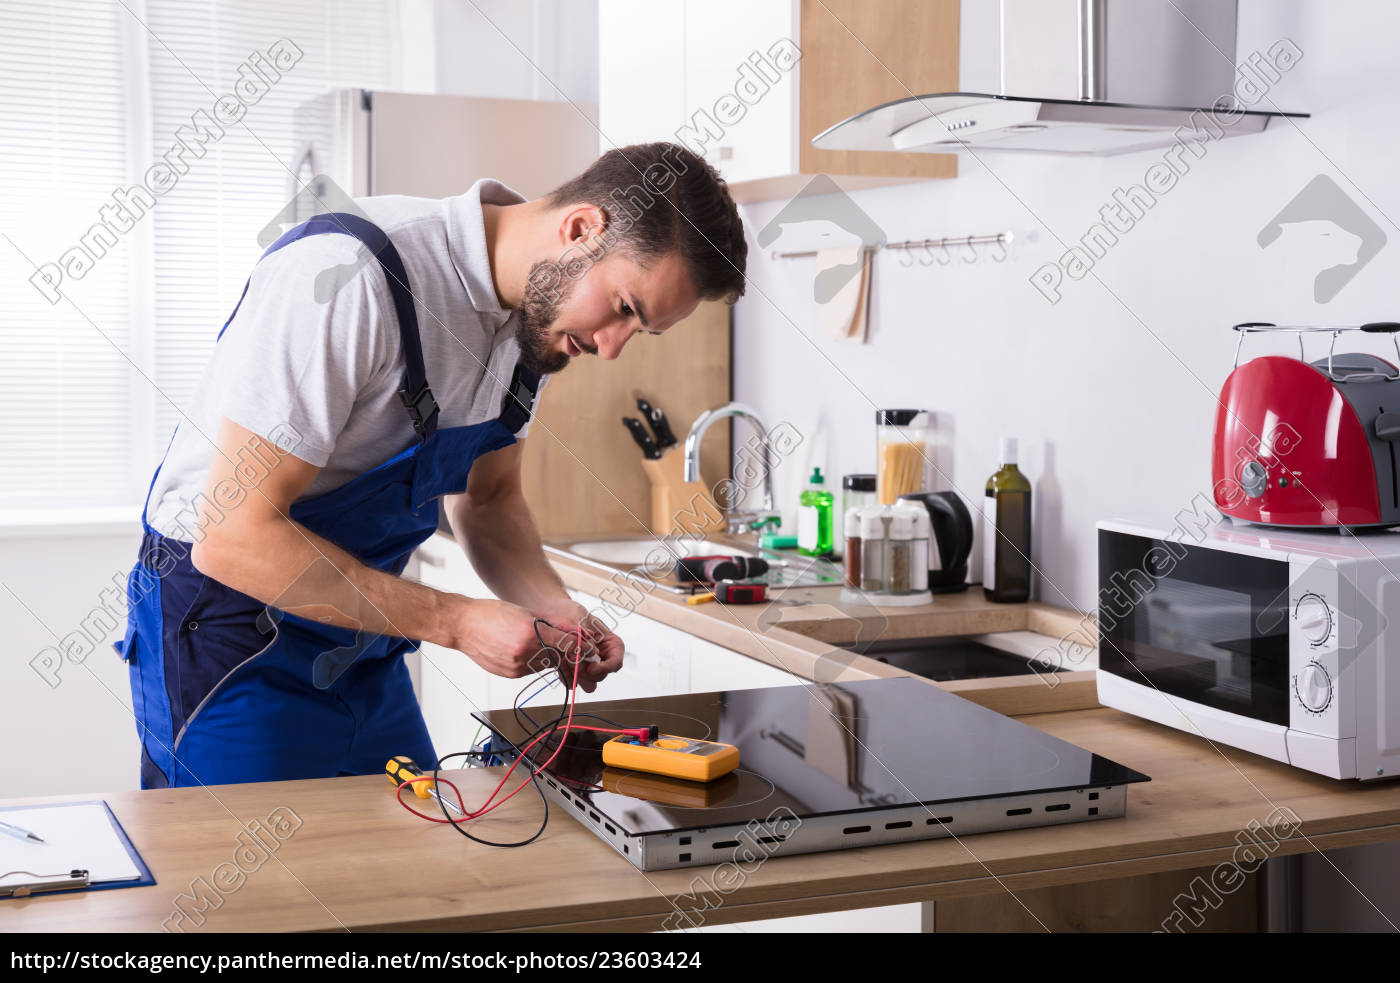 technician, repairing, induction, stove, in, kitchen - 23603424